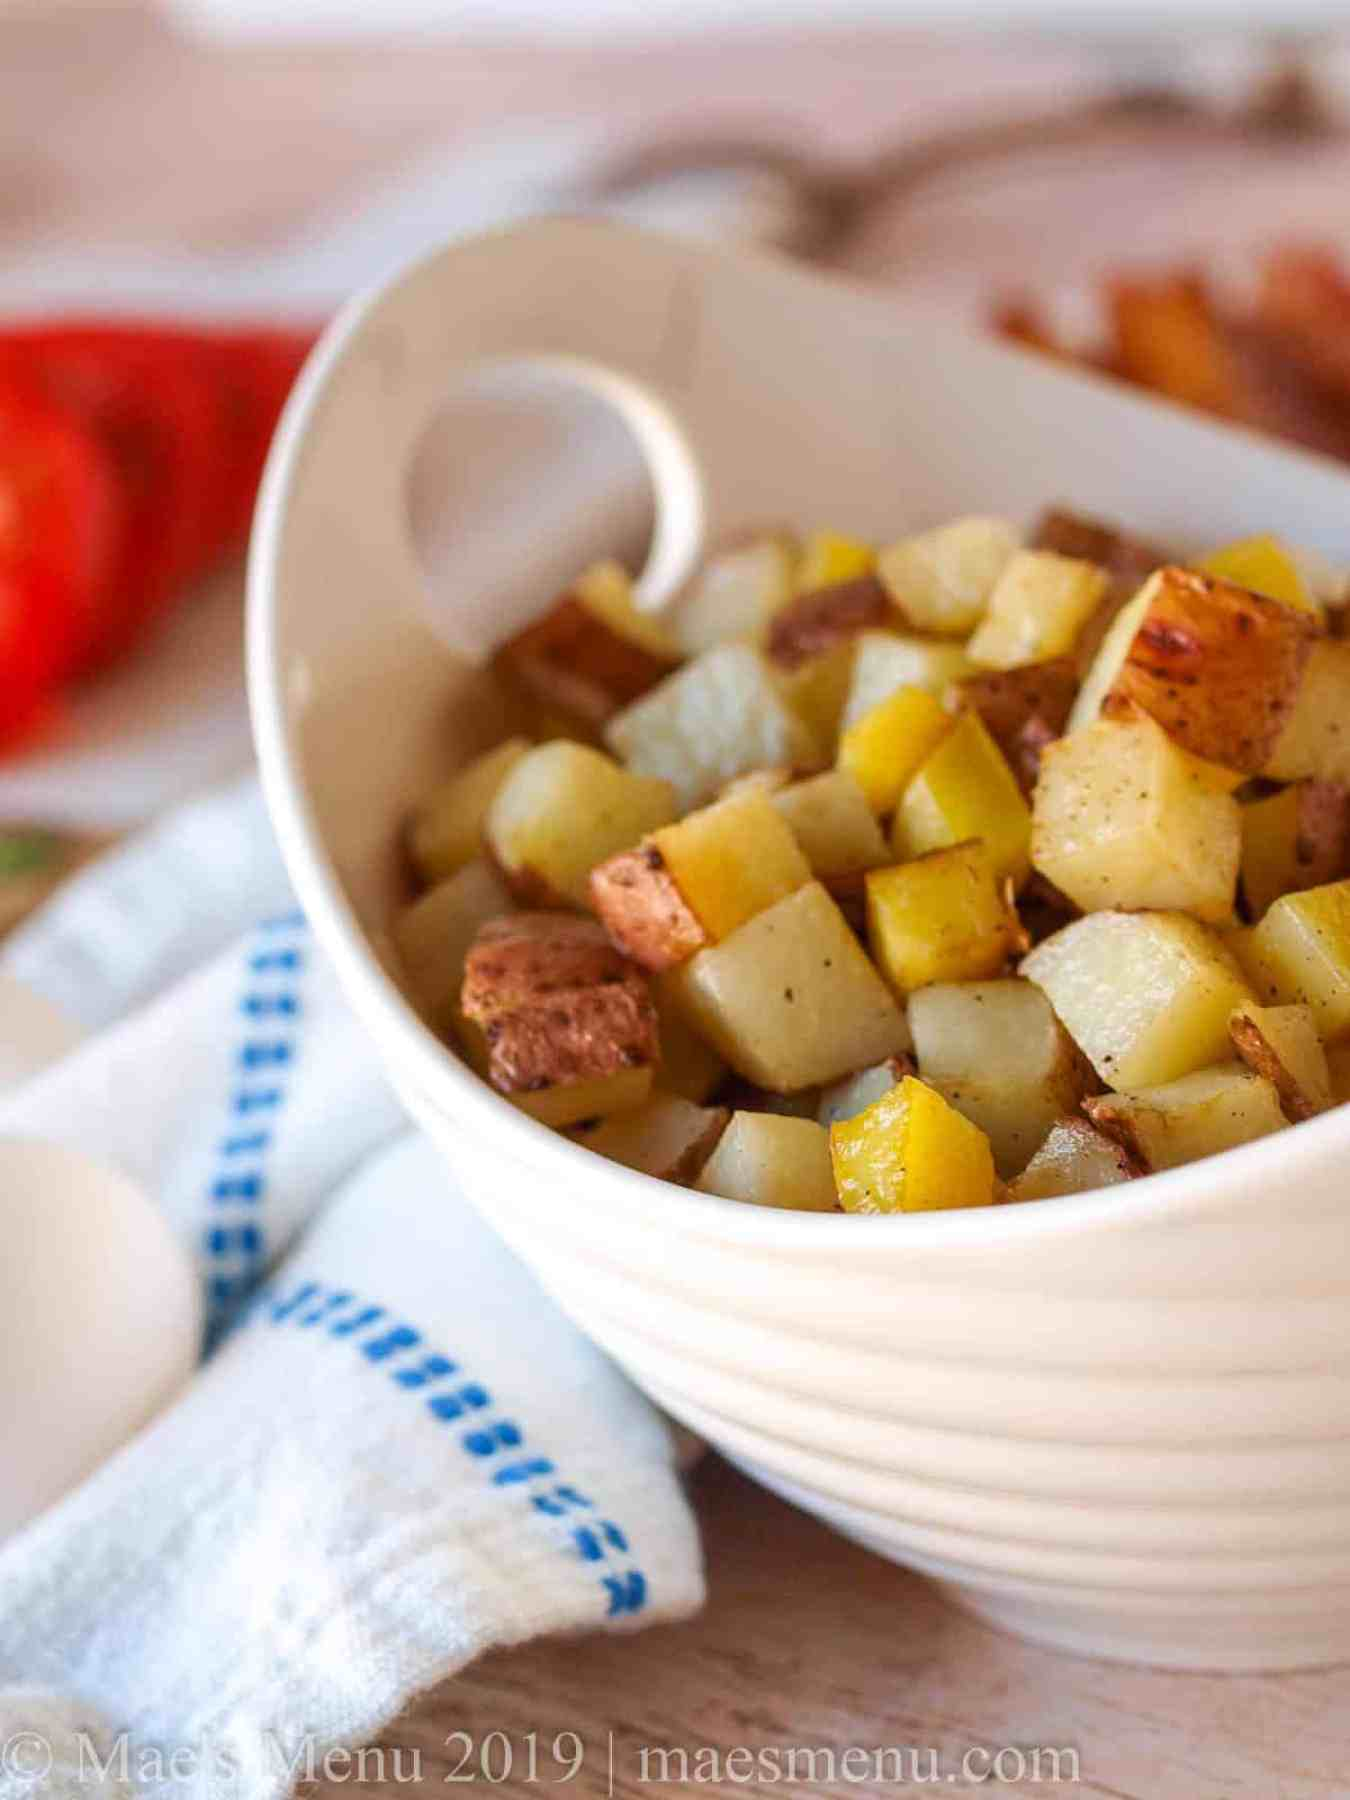 A large white bowl of roasted cubed hash browns.